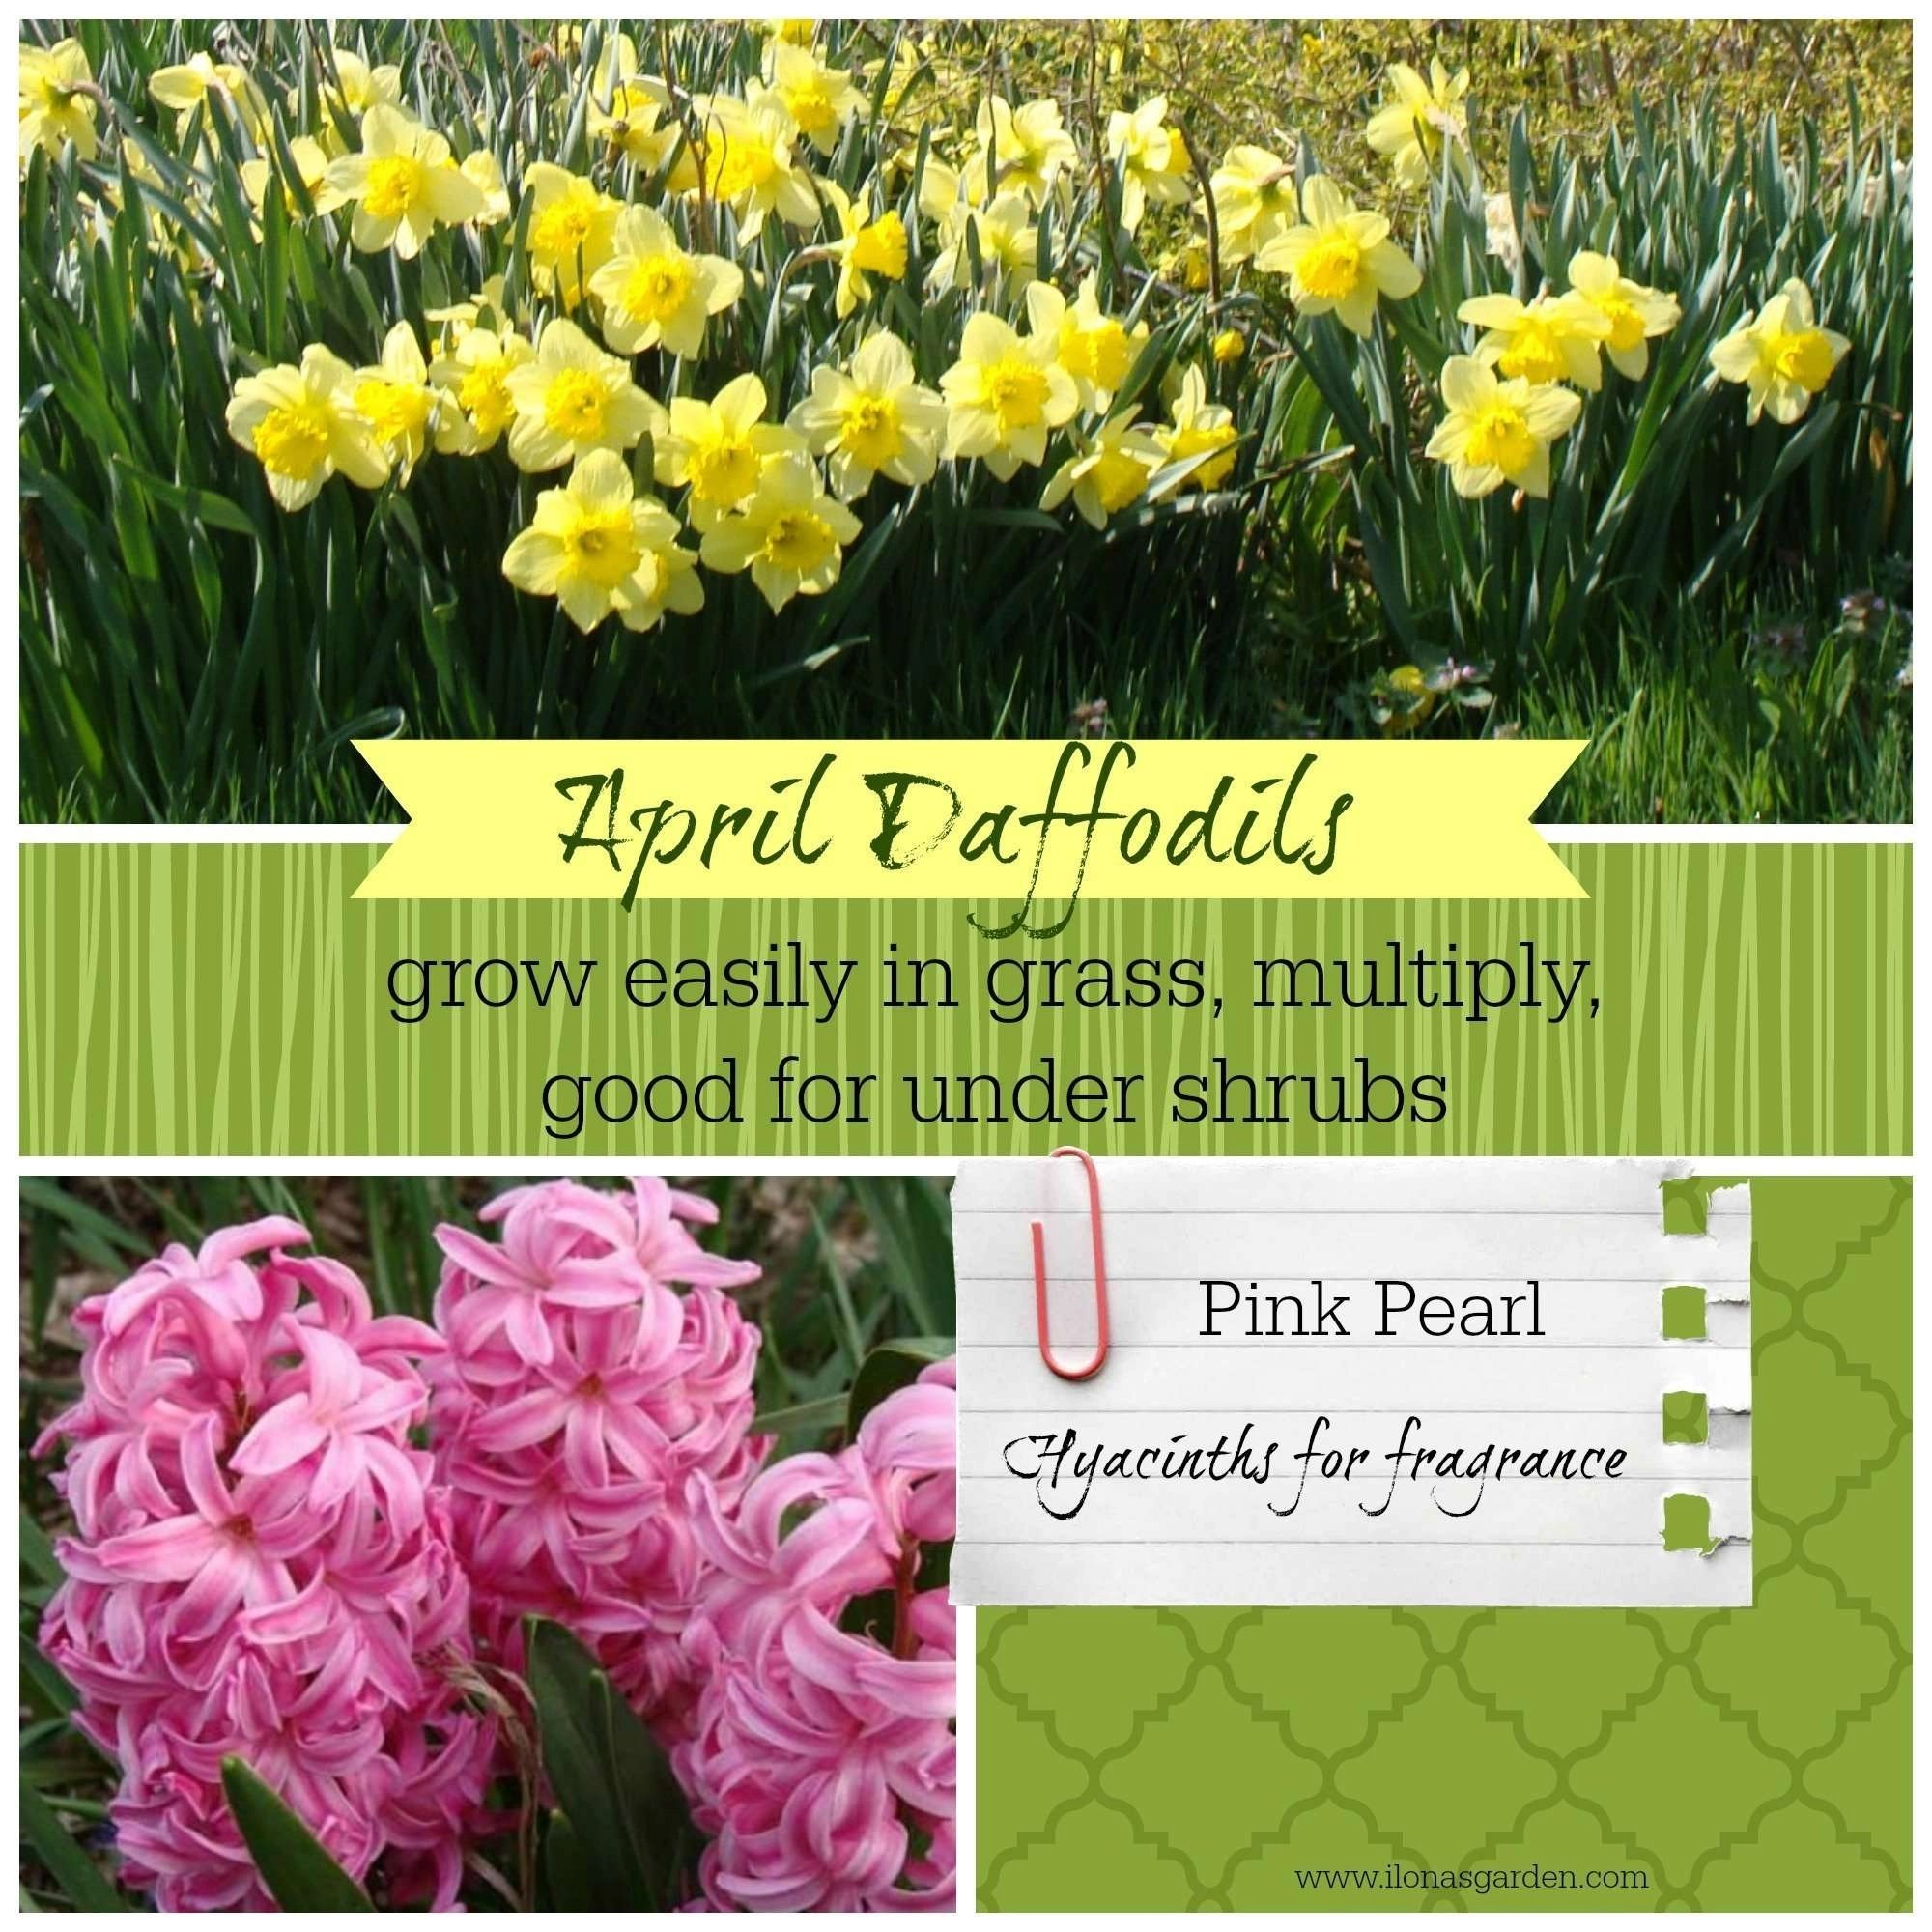 When how to plant daffodil bulbs - Spring Bulbs Blooming In April